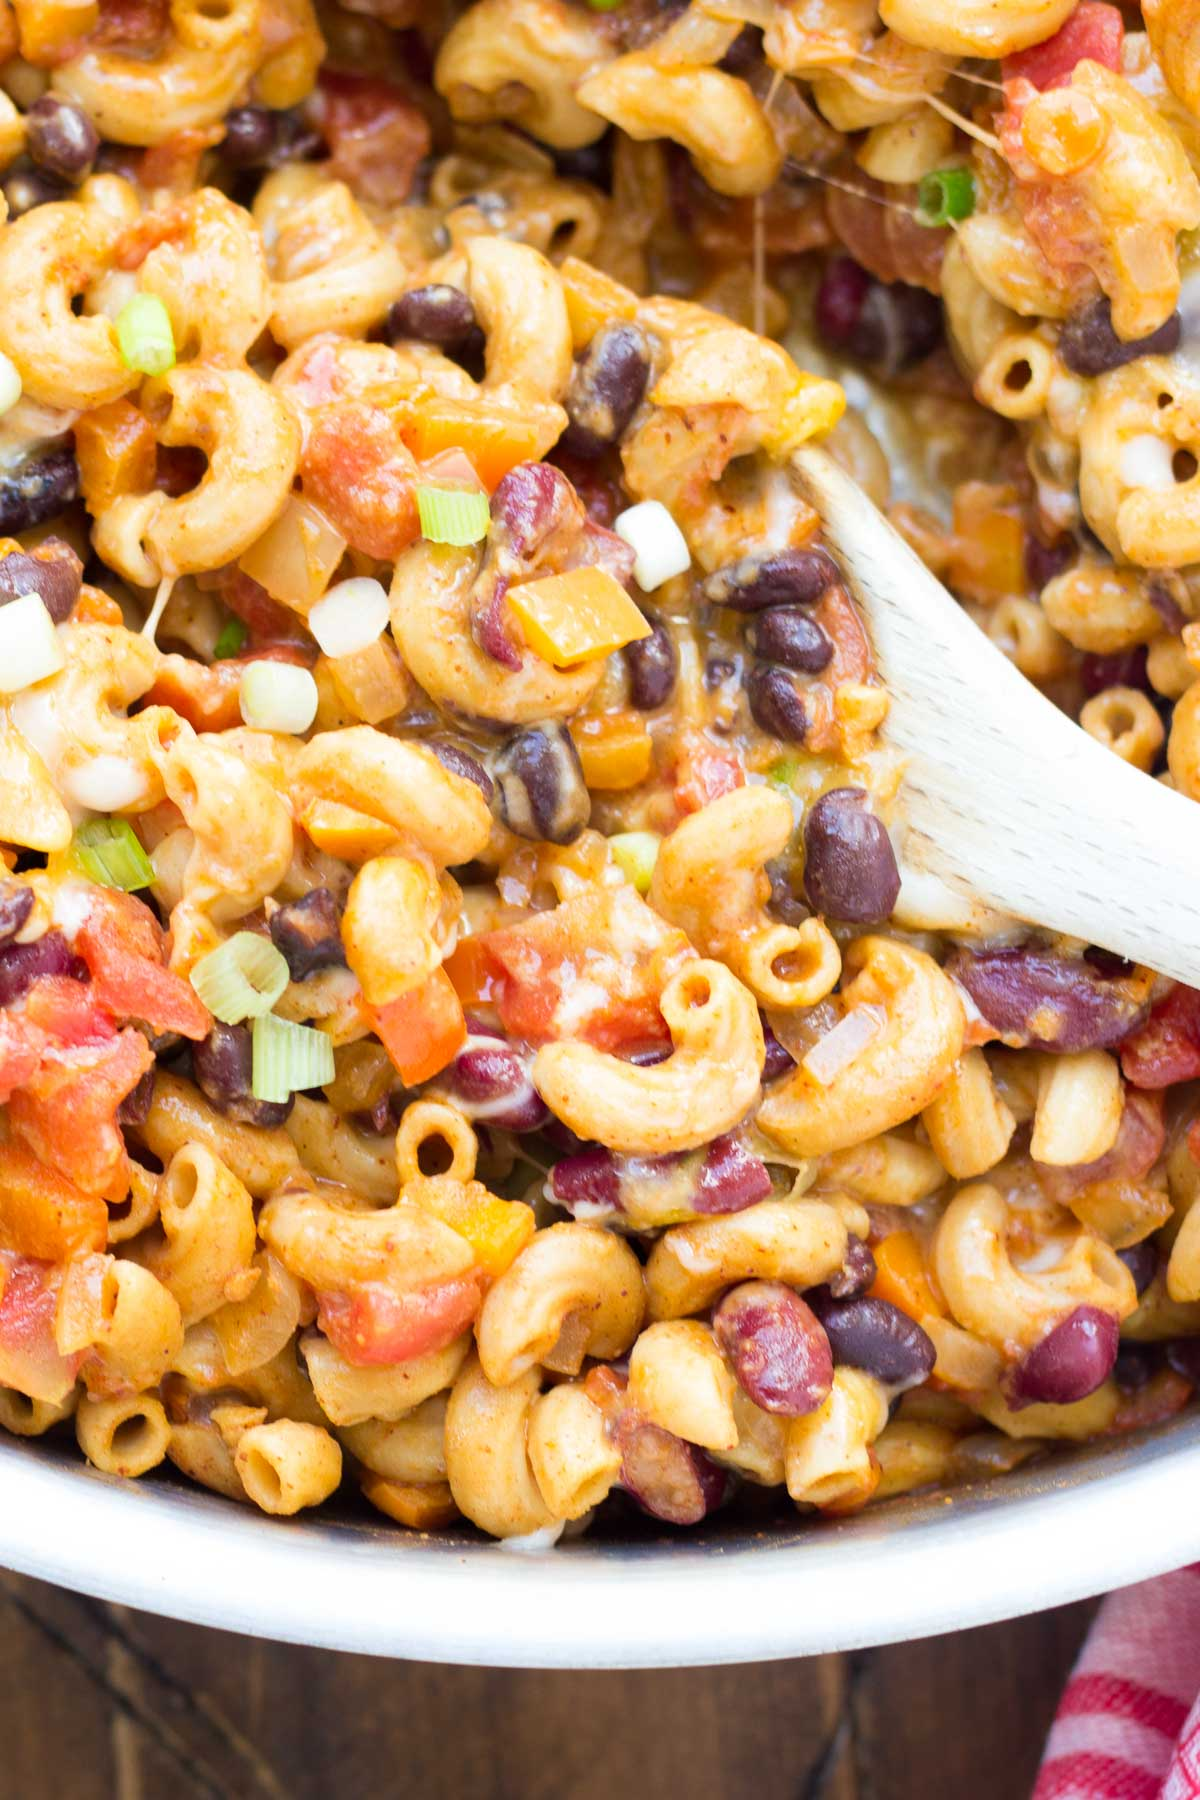 Vegetarian chili mac in a skillet with a serving spoon.